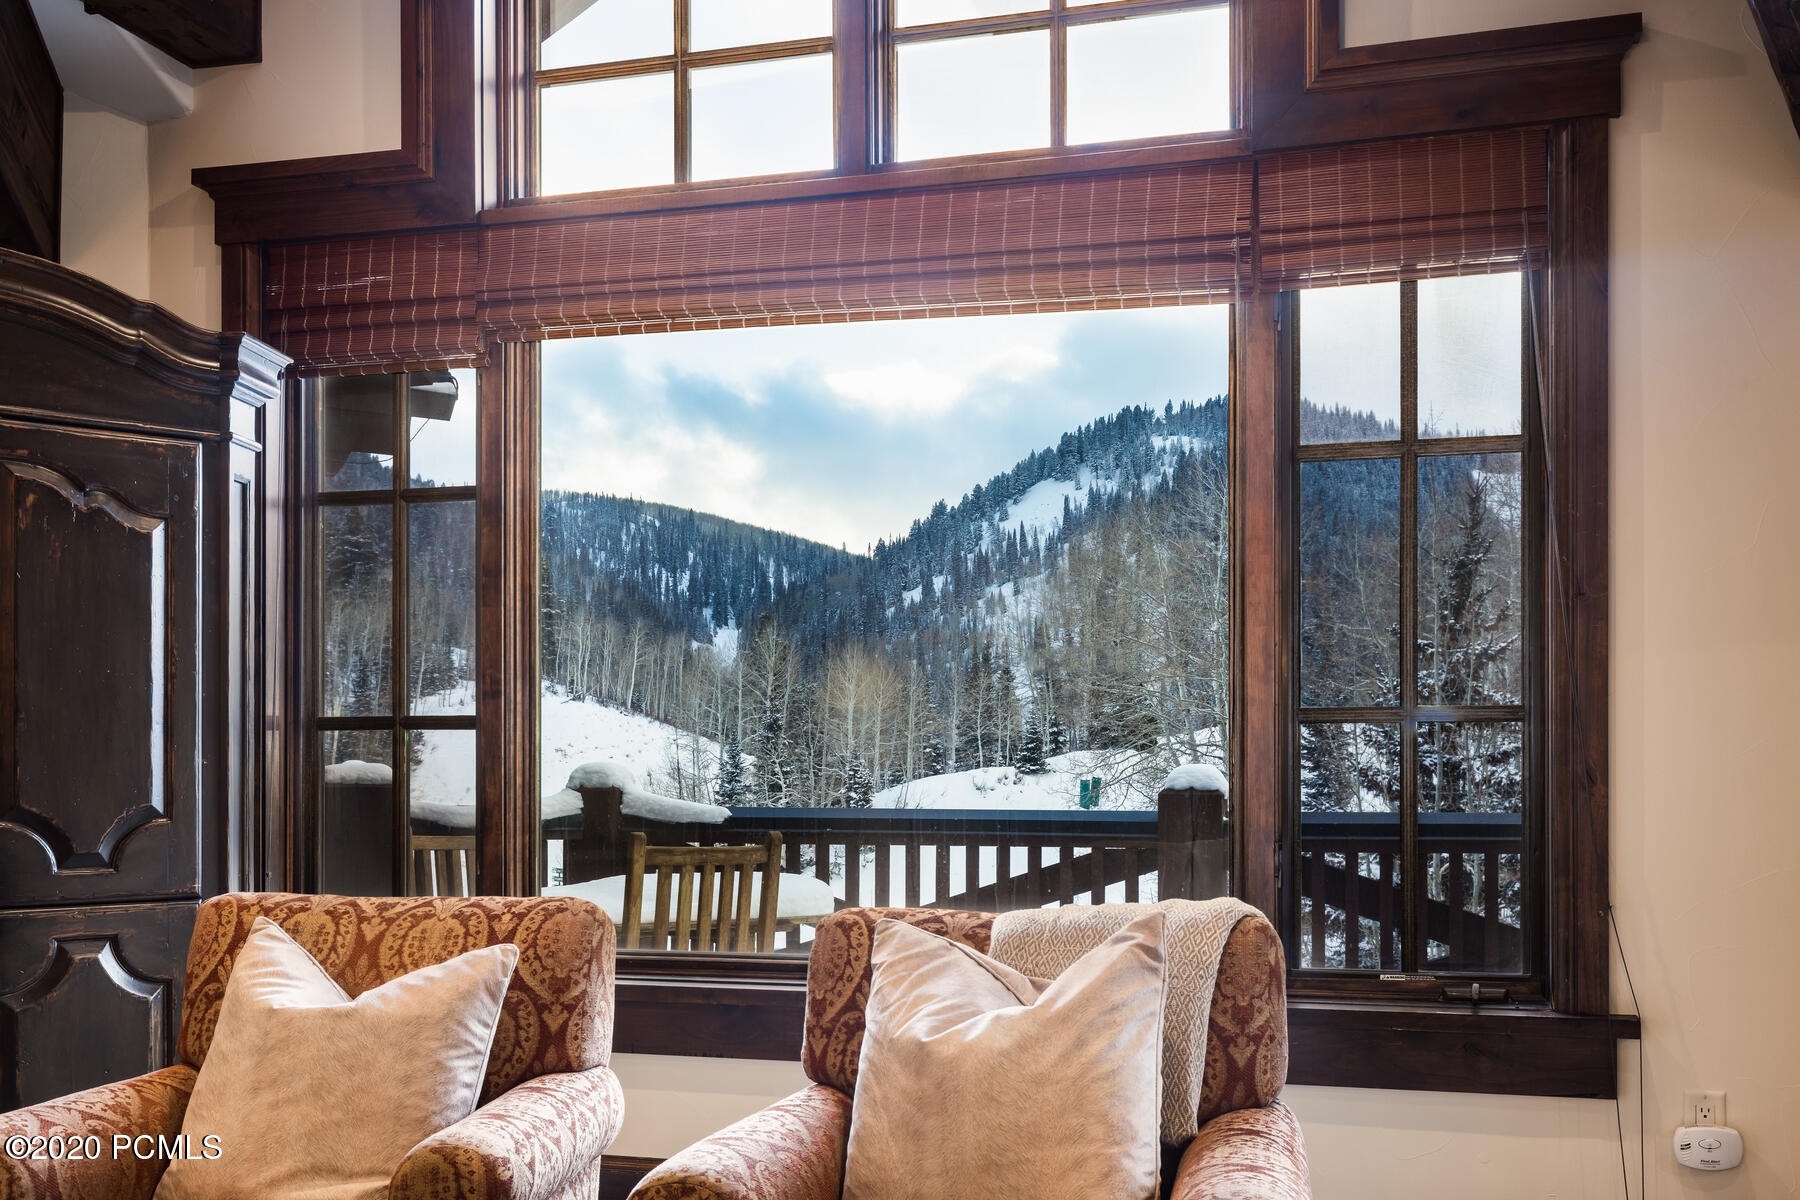 7560 Royal St, Park City, Utah 84060, 4 Bedrooms Bedrooms, ,6 BathroomsBathrooms,Condominium,For Sale,Royal St,12004942